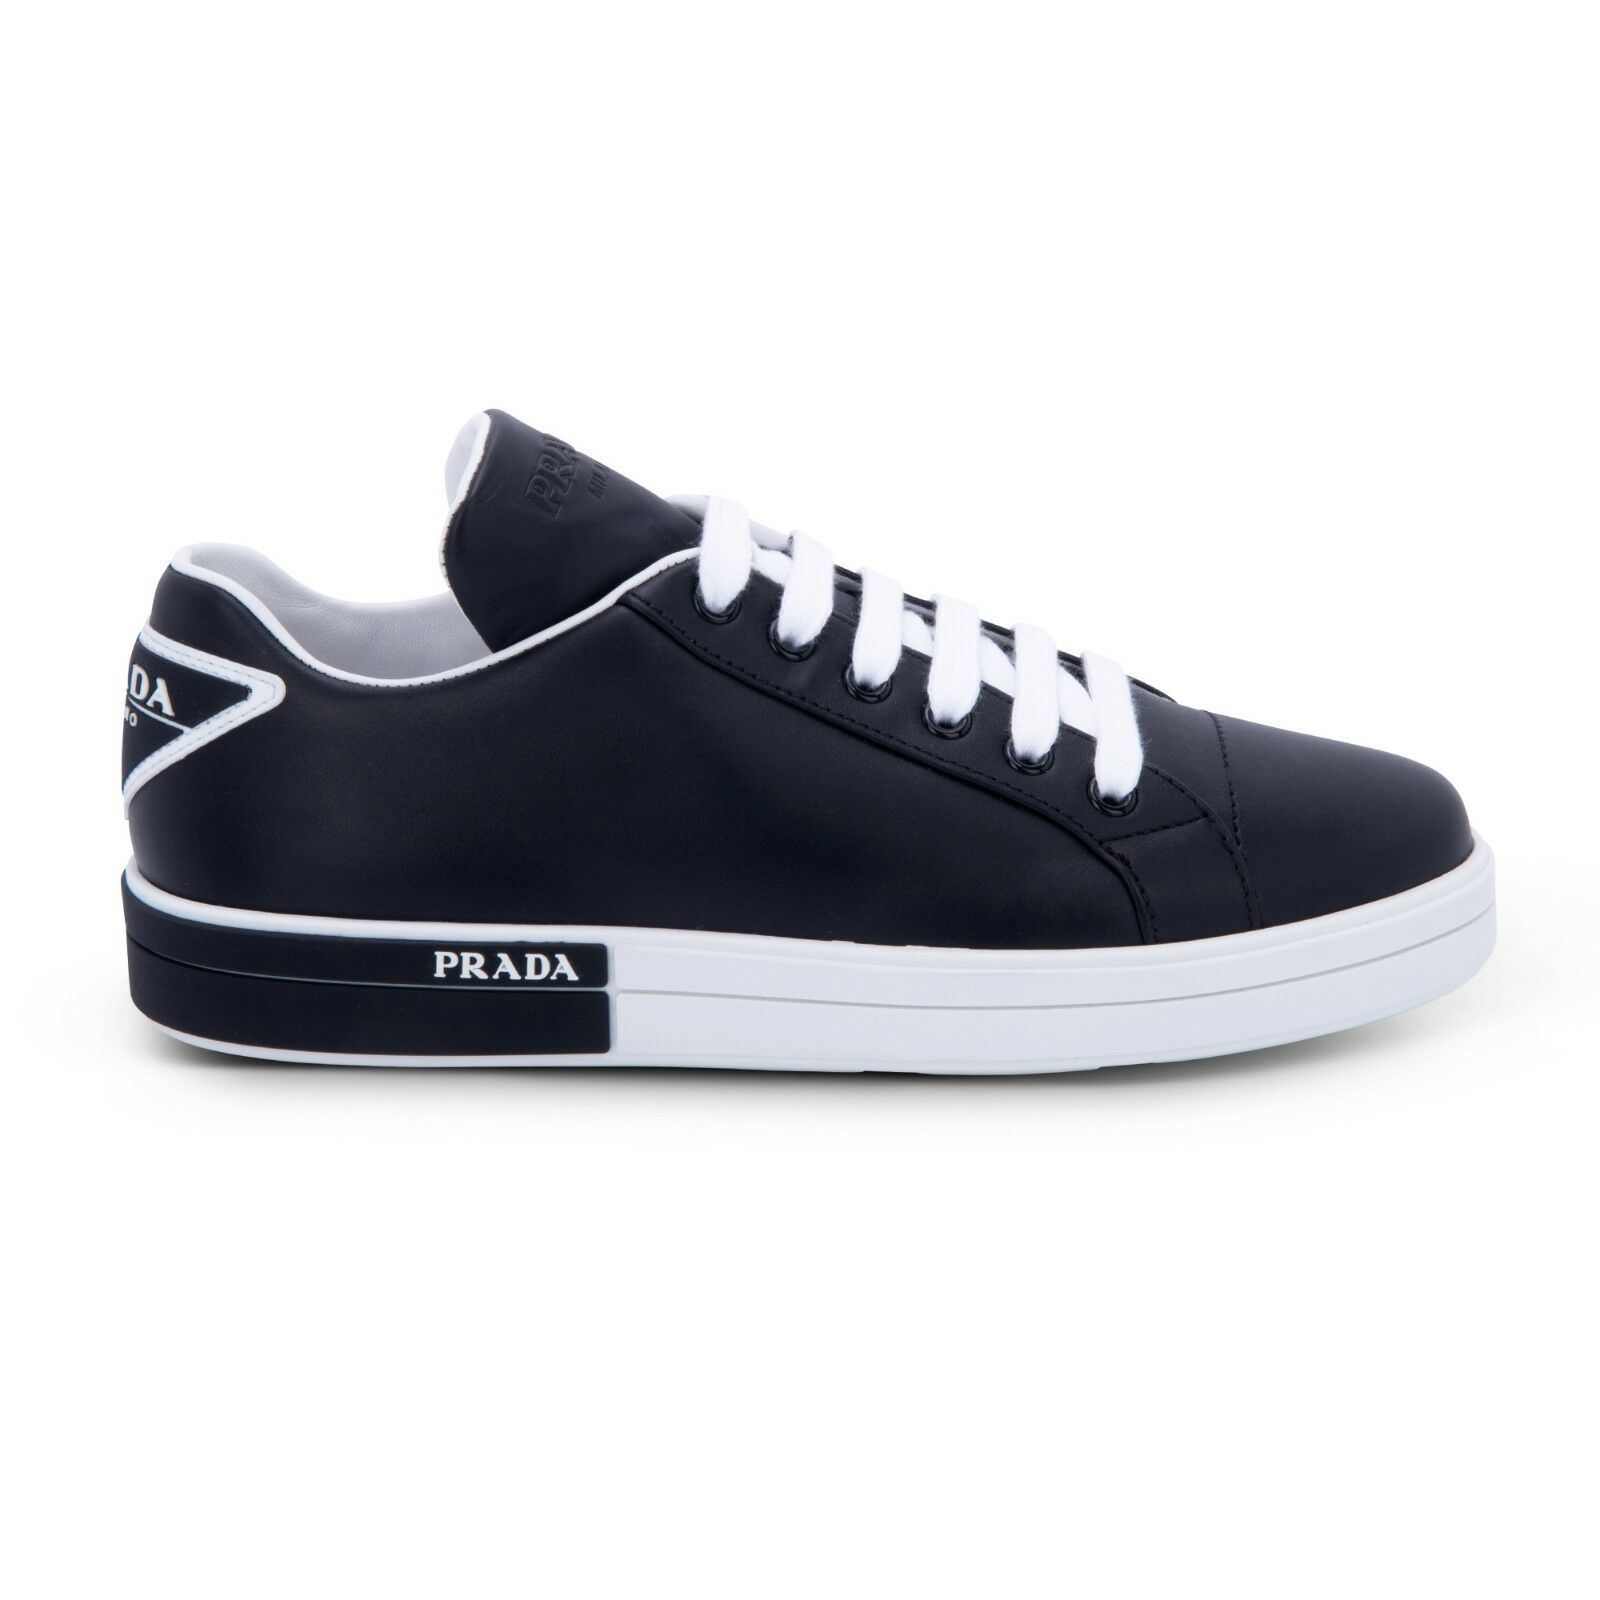 Women's Prada Trainers Black Leather Sneakers Size UK 3 US 5 NEW